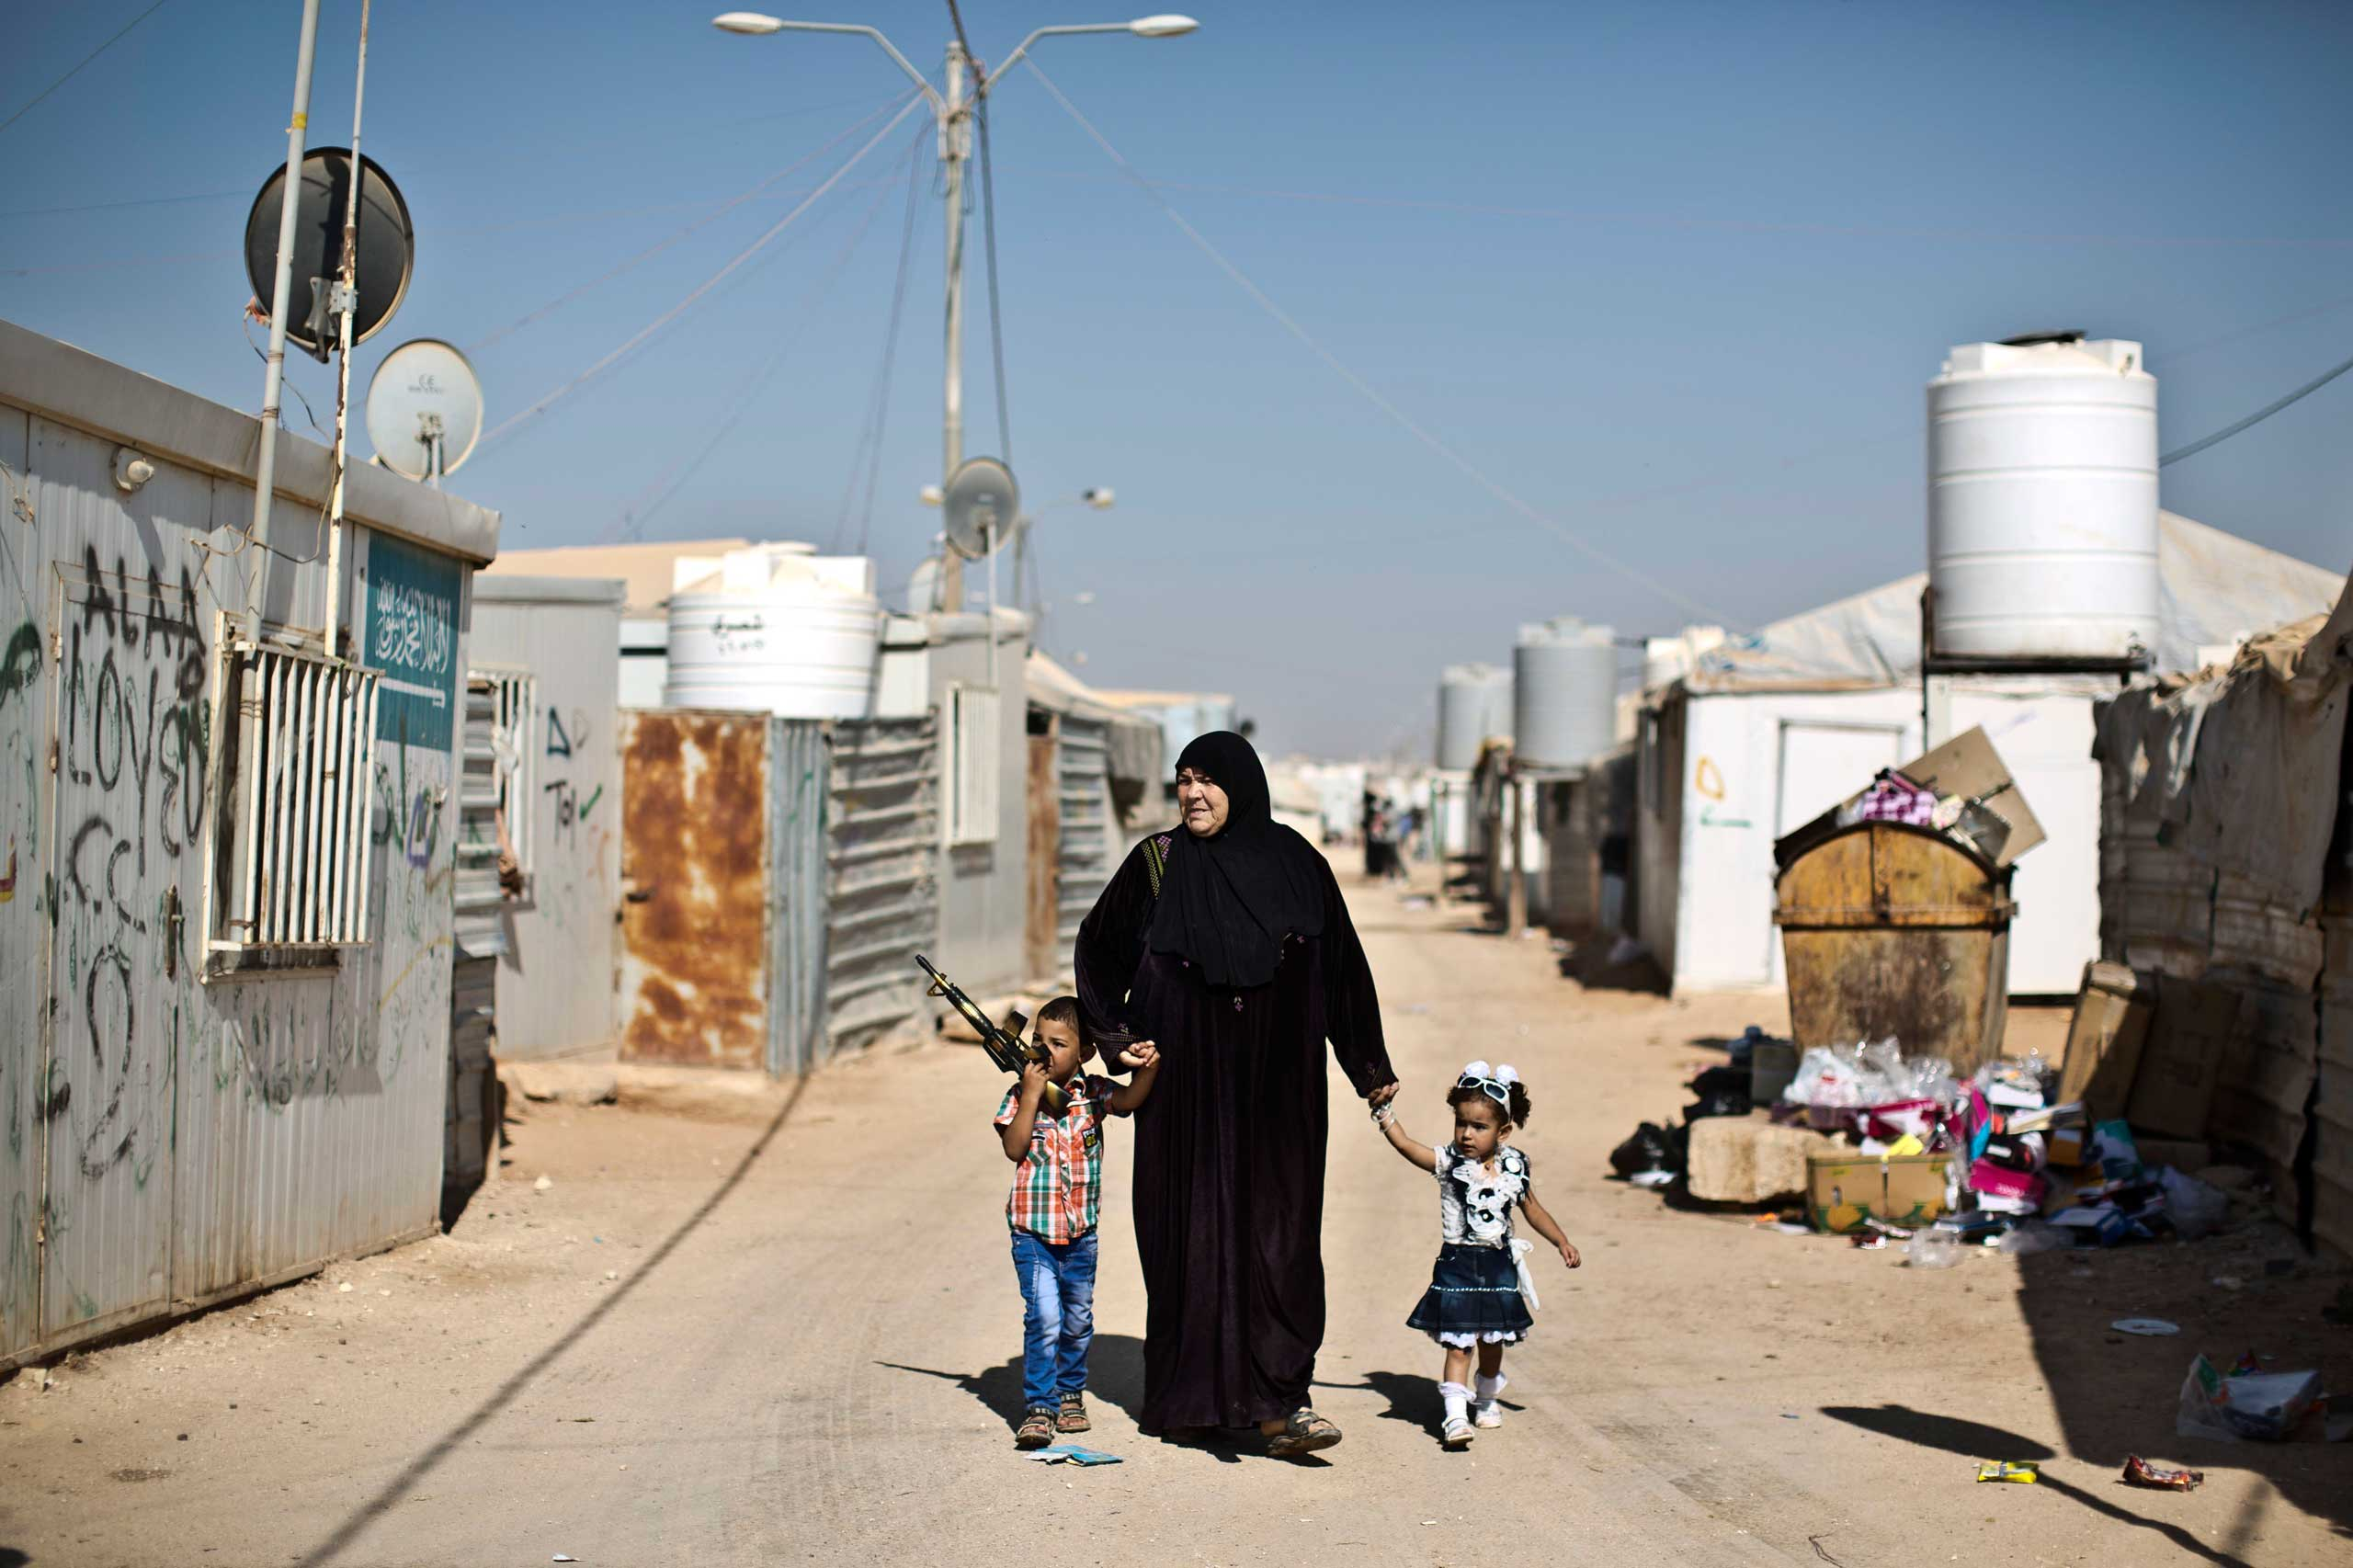 Syrian refugee children dressed in new clothes hold the hands of their grandmother while walking back to their shelter on the first day of the Eid al-Fitr holiday that marks the end of the holy fasting month of Ramadan at Zaatari refugee camp, in Mafraq, Jordan, on July 17, 2015.